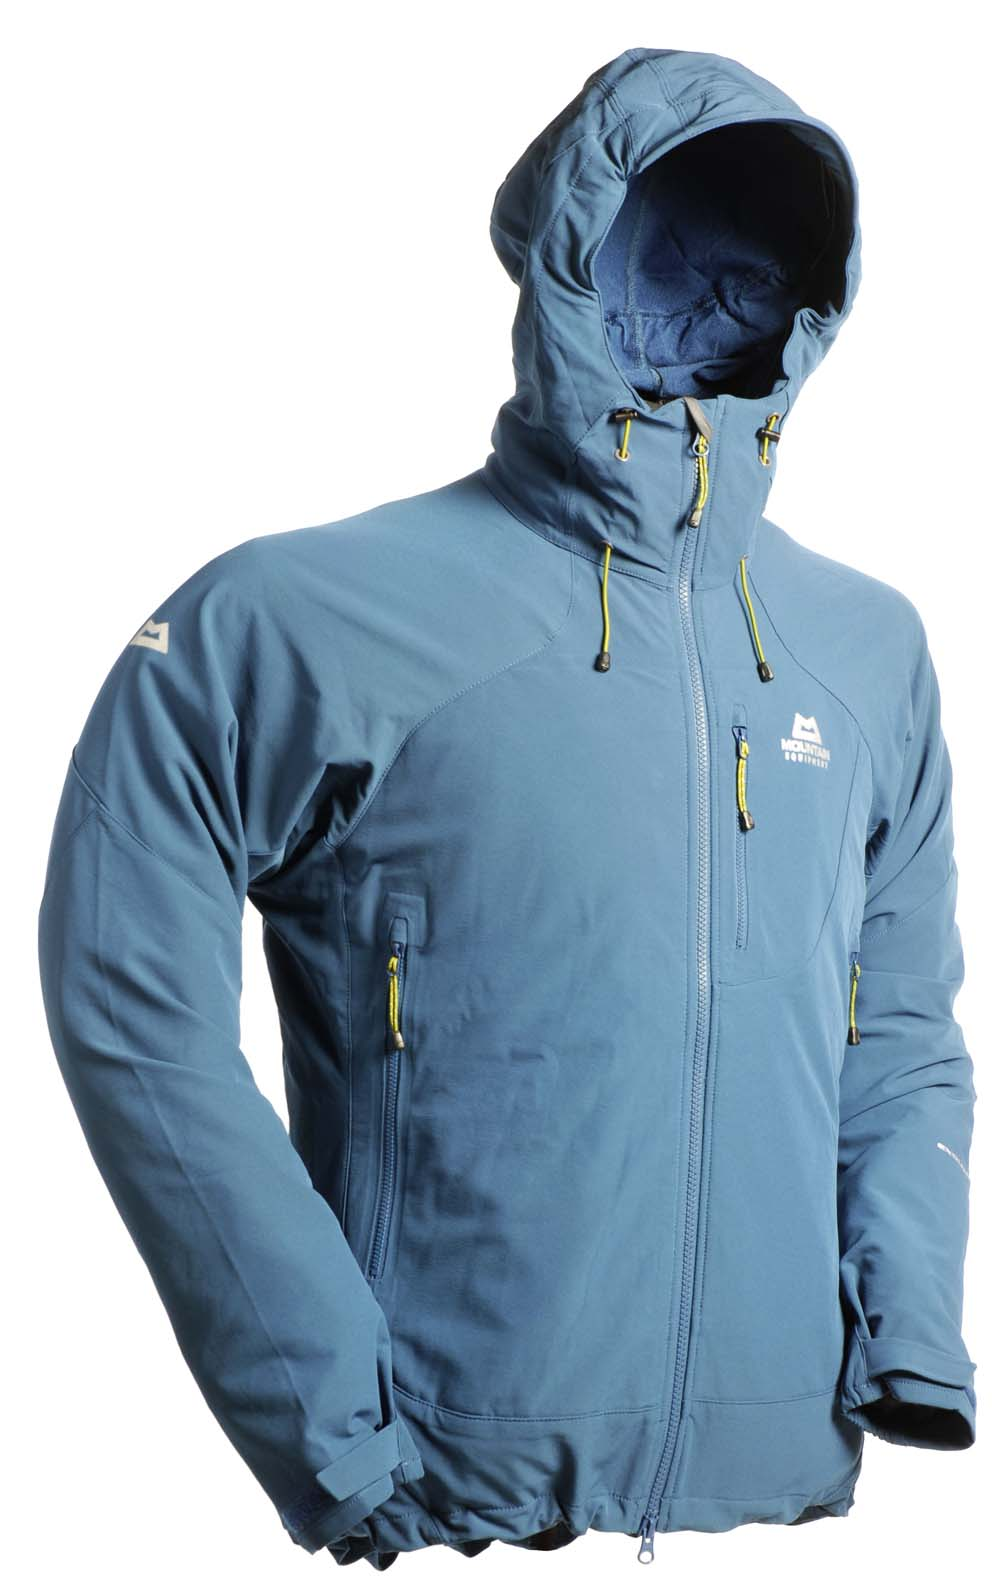 www.mountain-equipment.co.uk